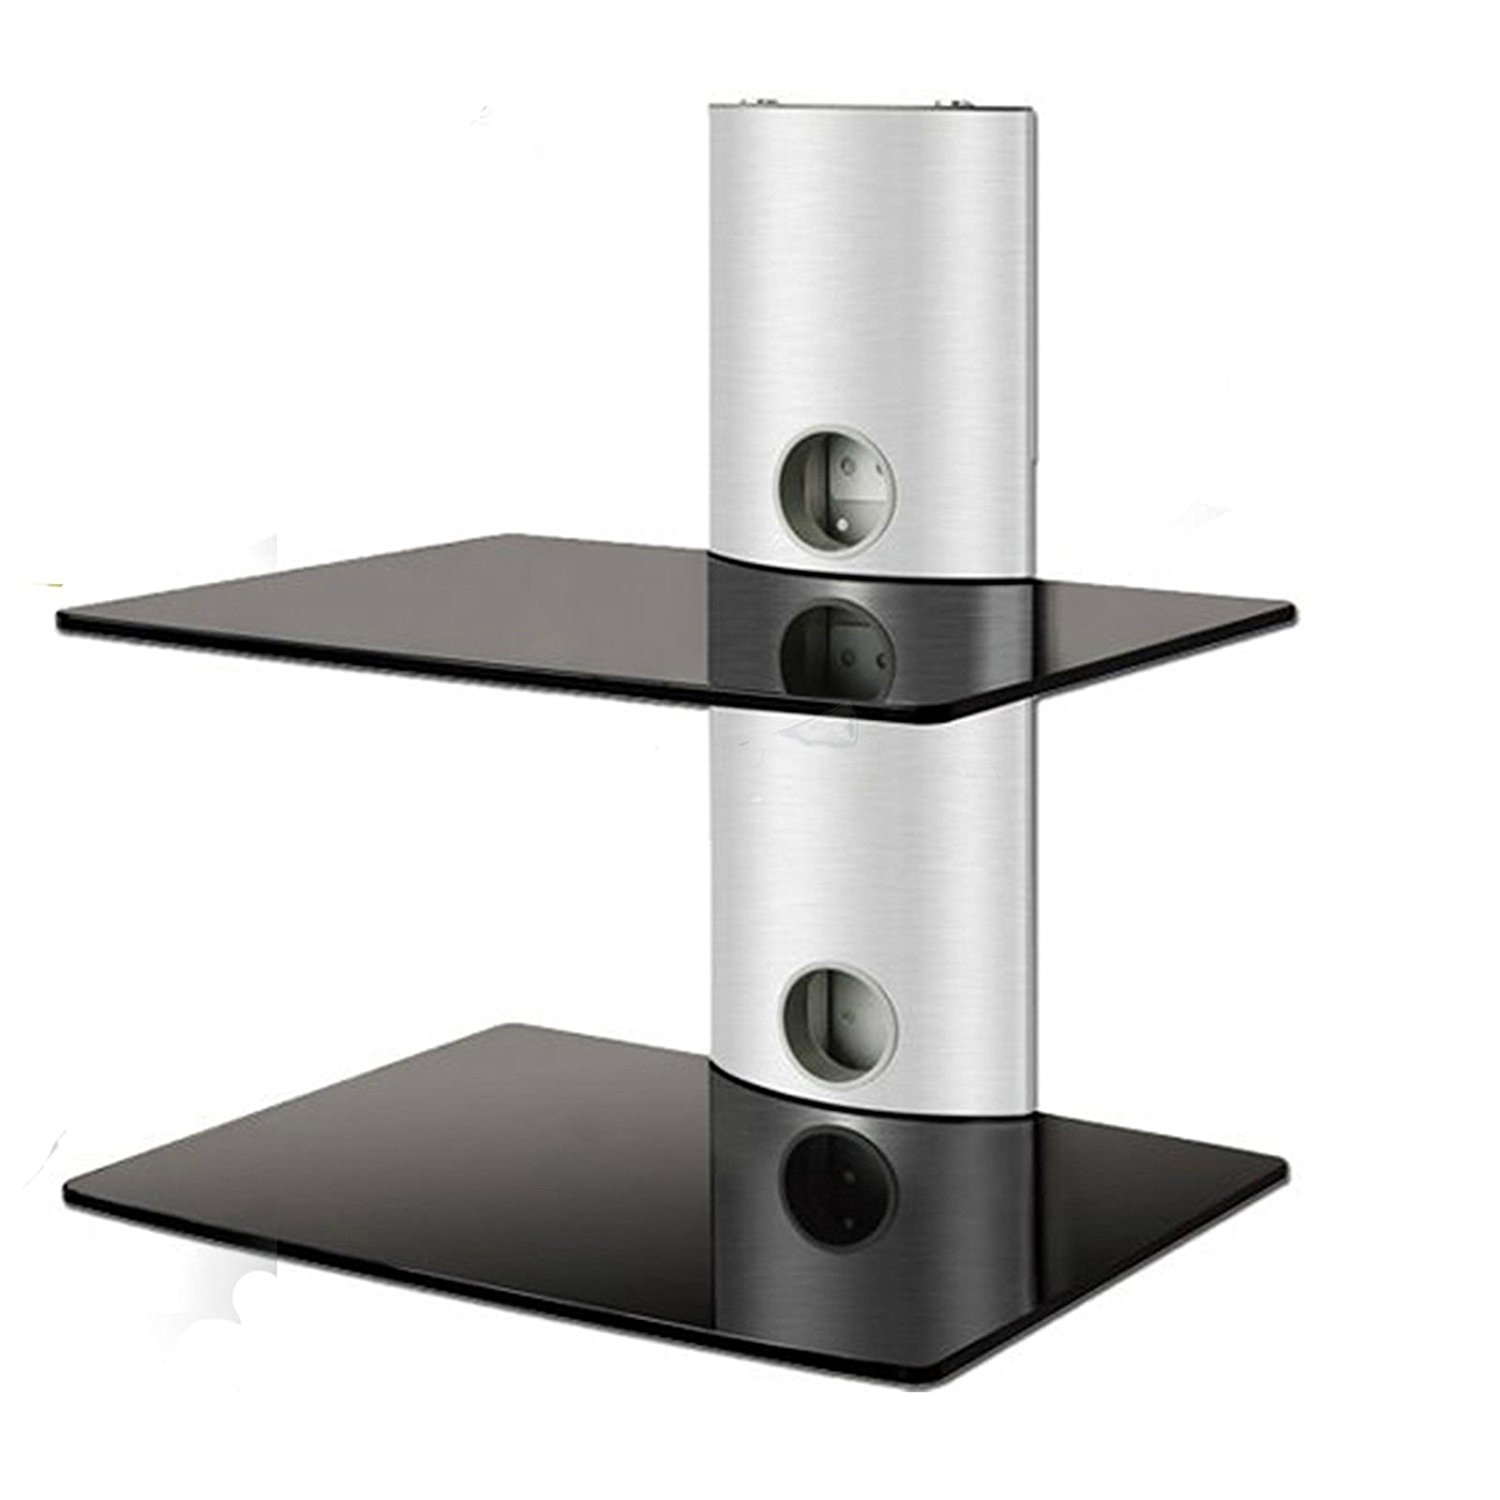 2xhome Double Aluminum Under TV Tempered Glass Shelves Dual Shelf 2 Tier Wall Mount Mounted Bracket Shelving Management... by 2xhome